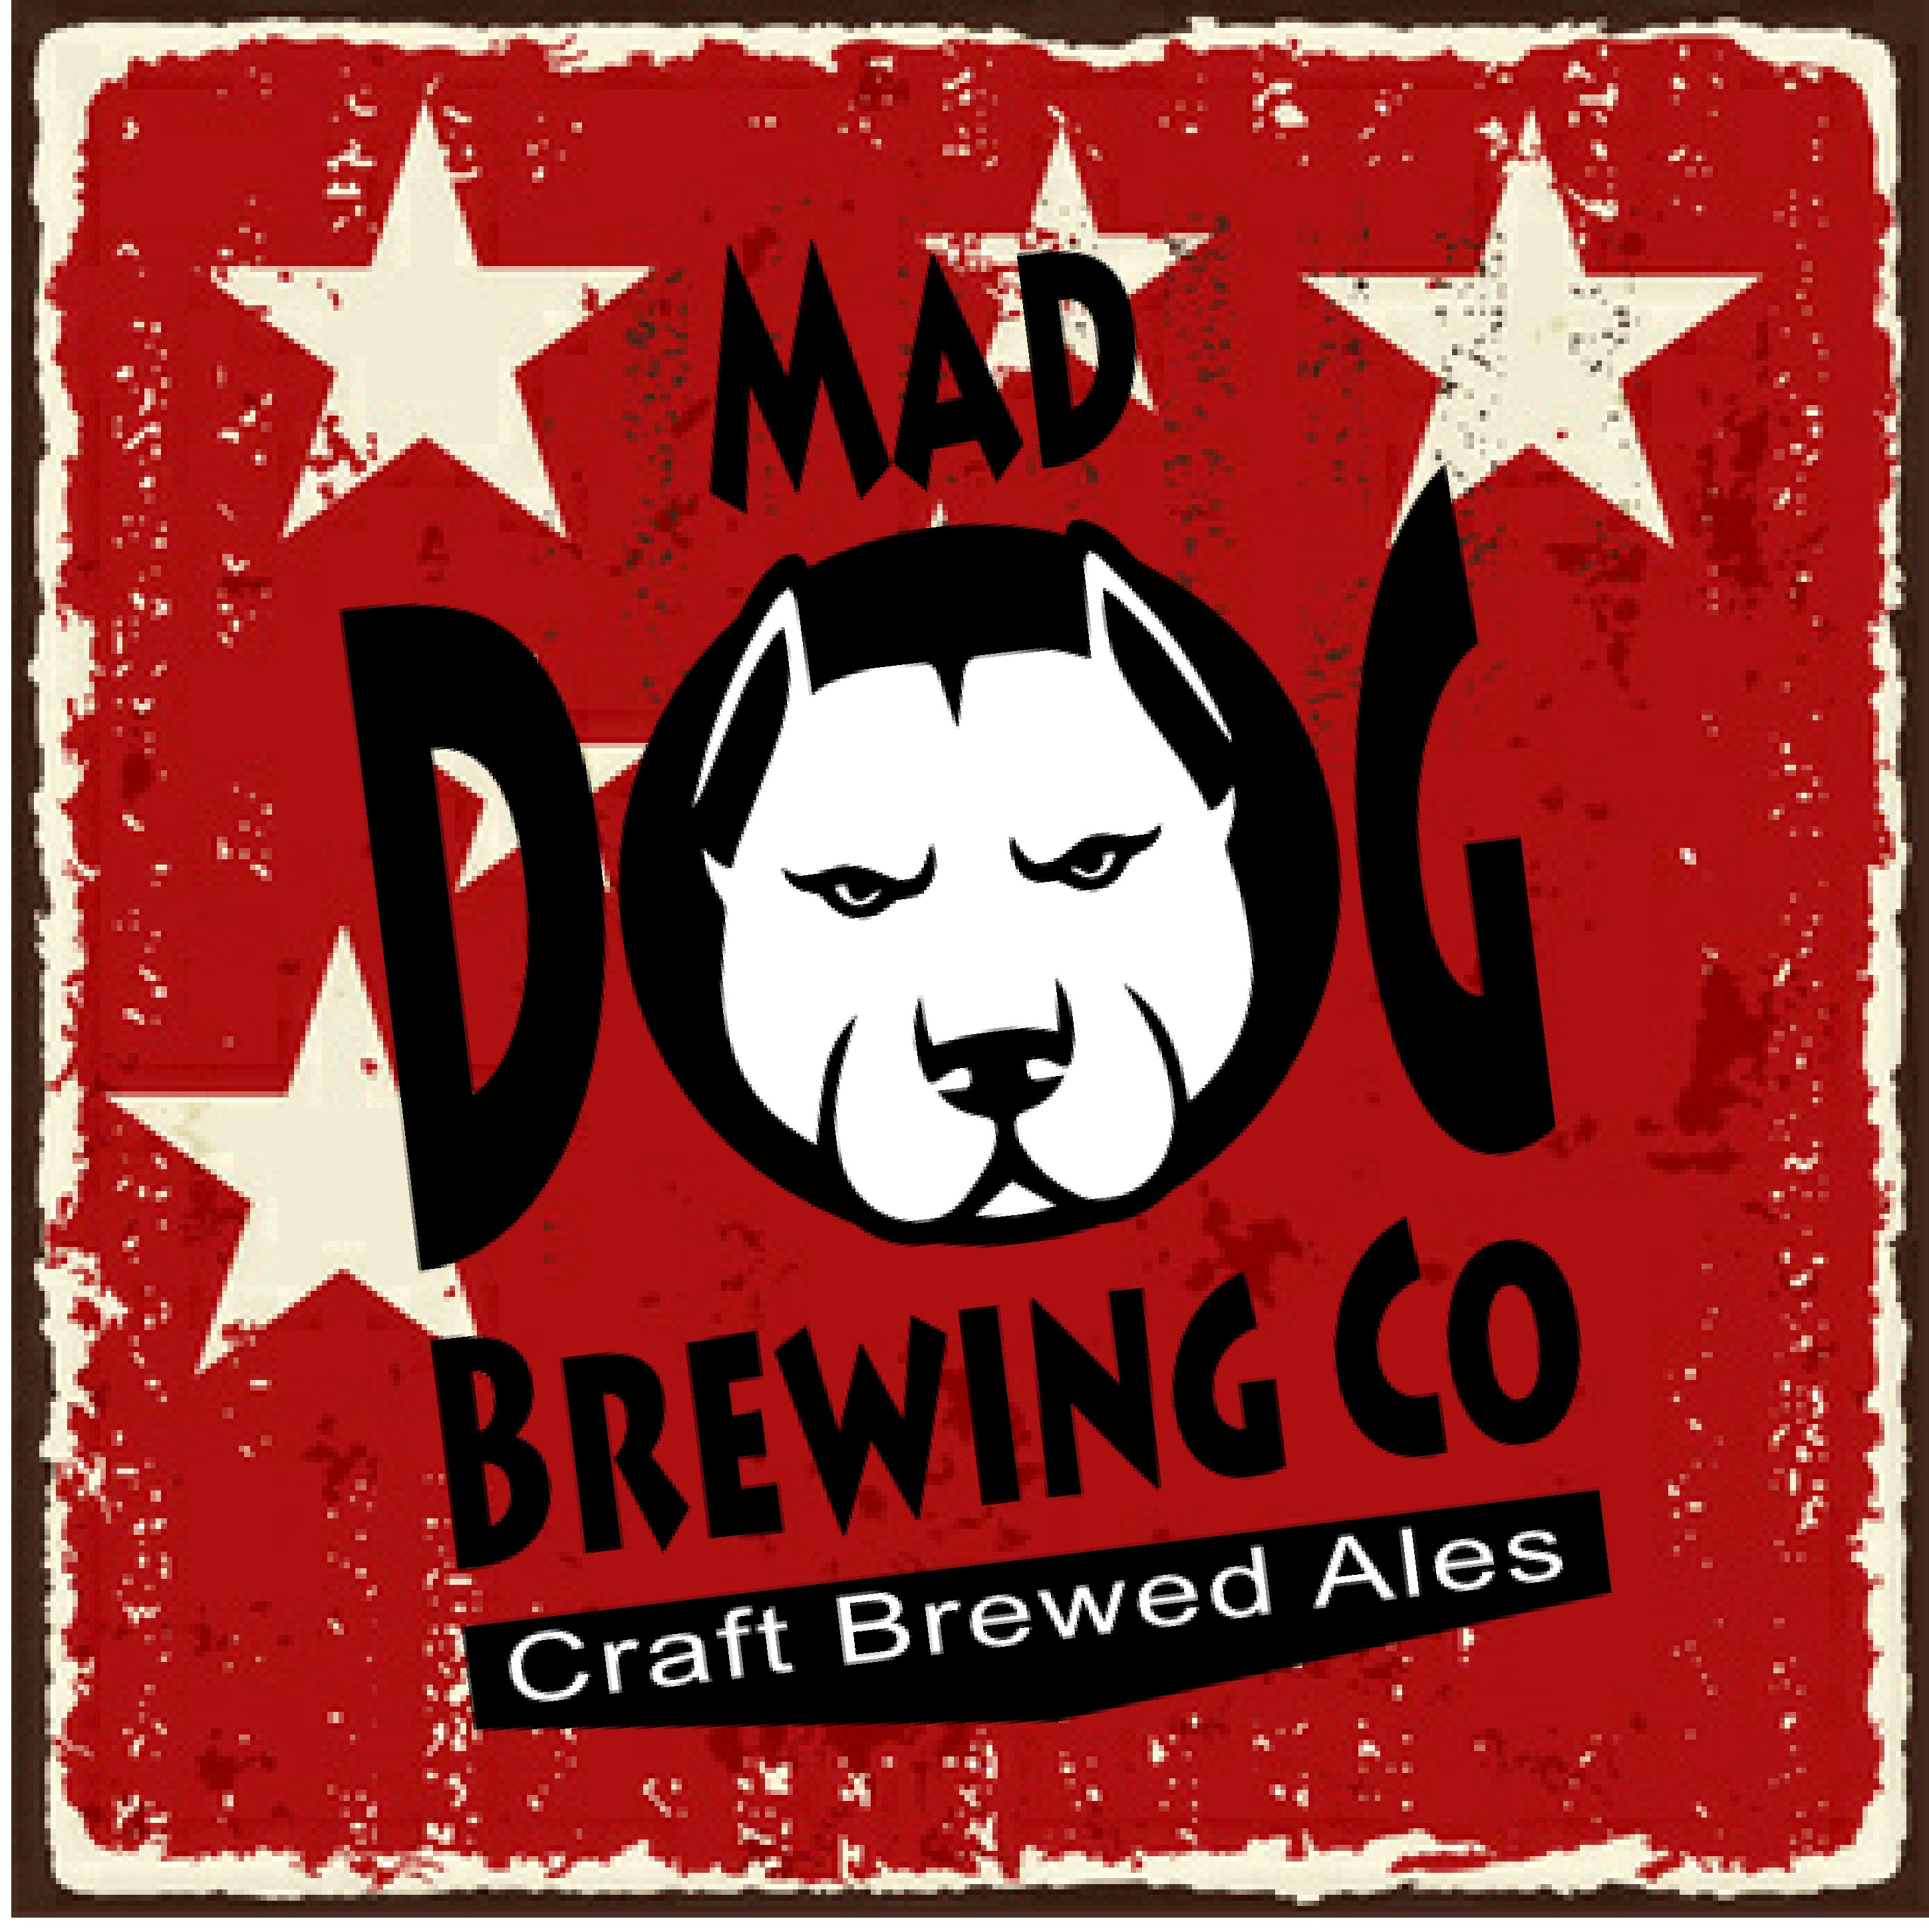 Mad Dog Brewing Co Shop For Welsh Beer Welsh Real Ale Cider And